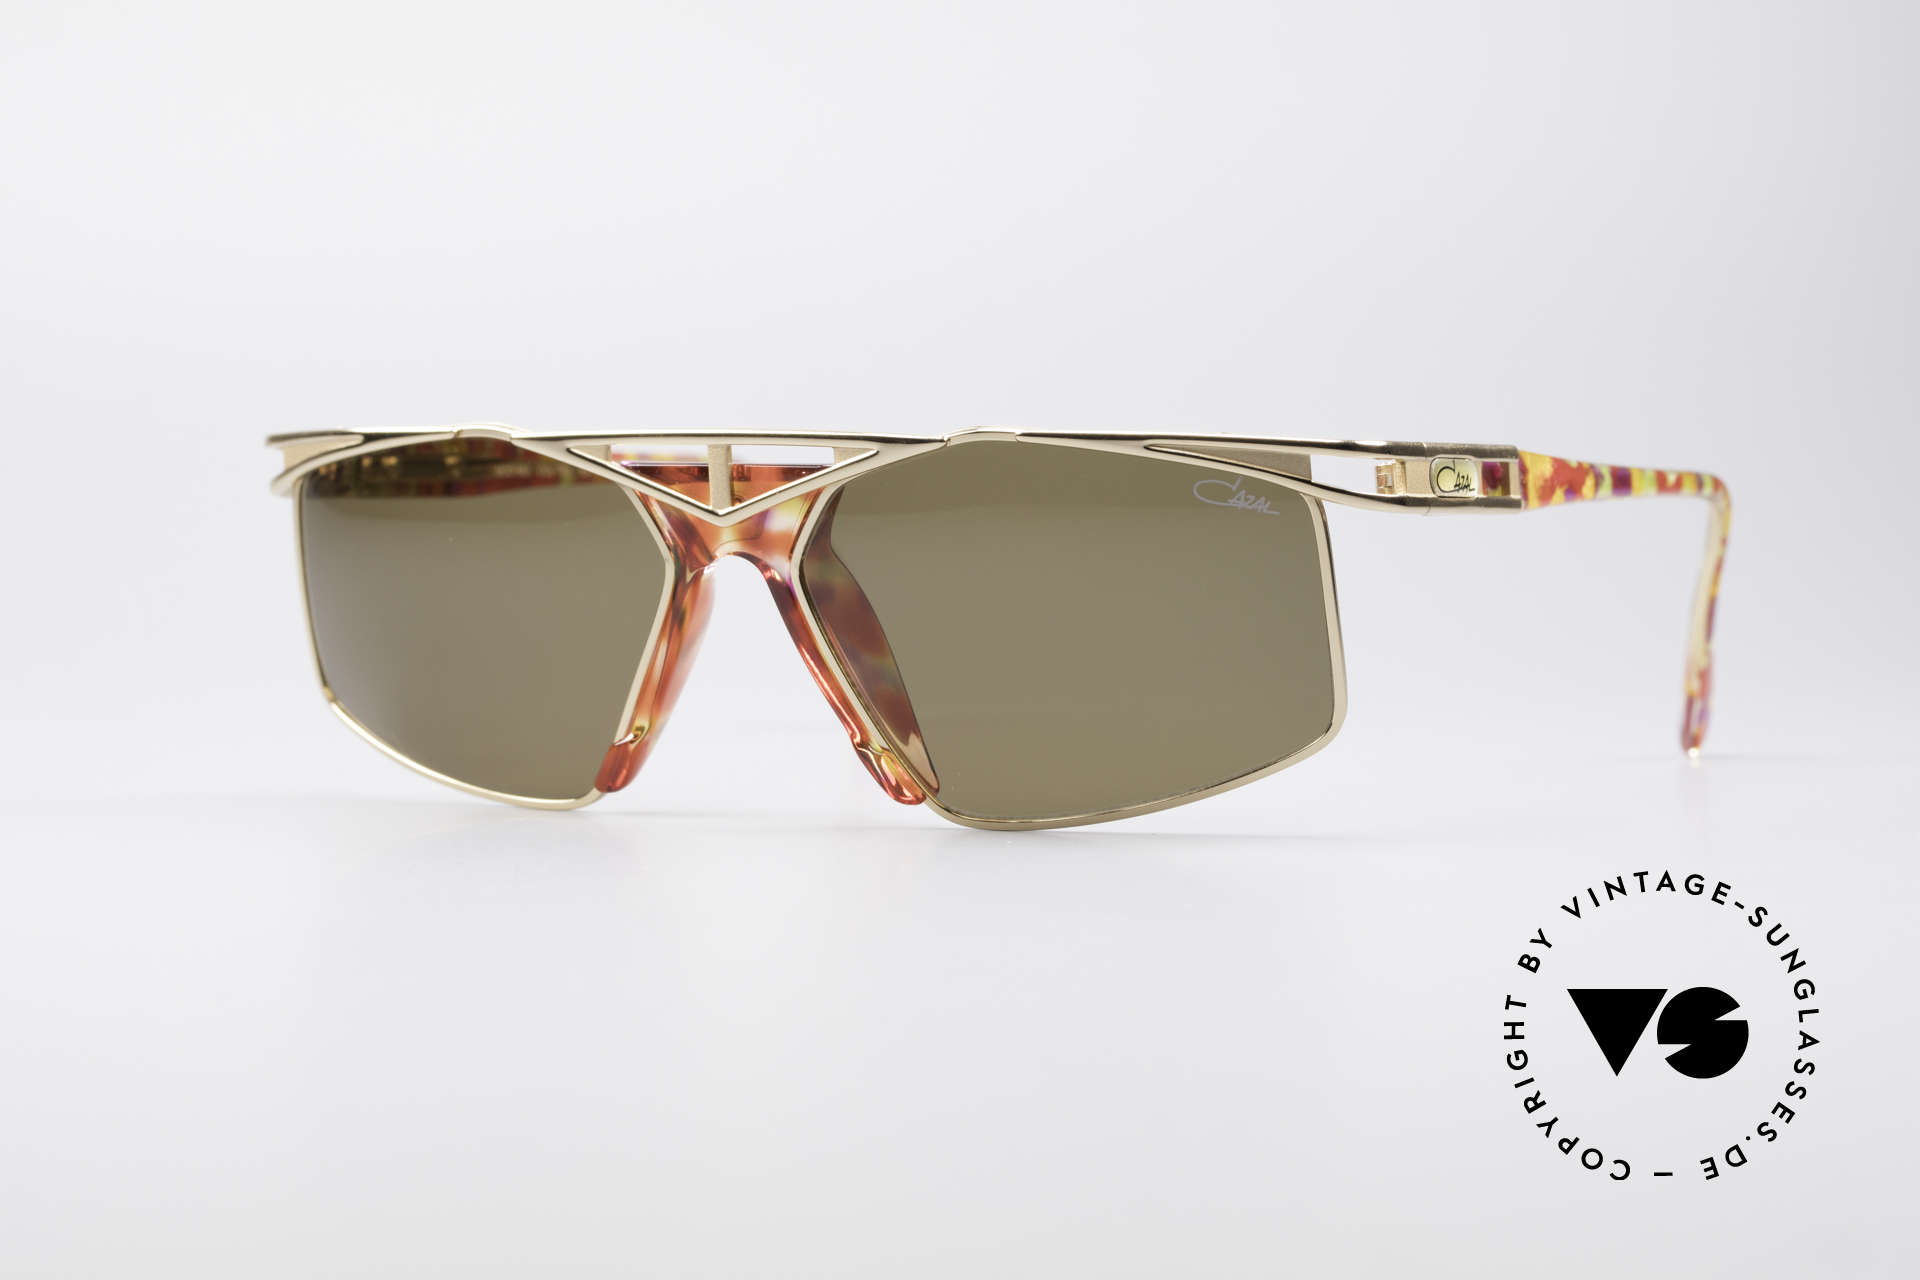 Cazal 962 Sporty Vintage Shades, classy, sporty chic 90's designer sunglasses by CAZAL, Made for Men and Women